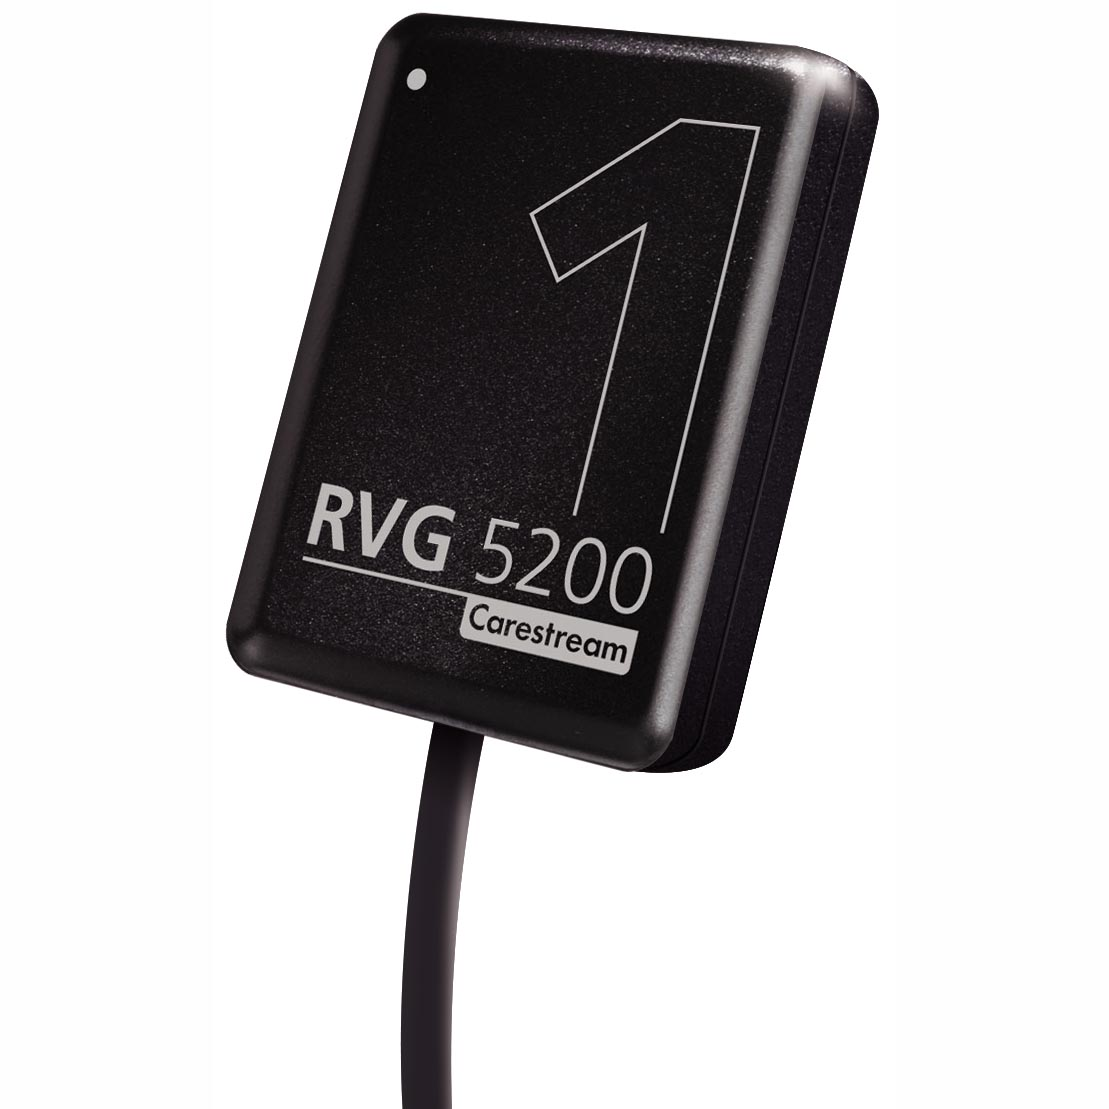 Радиовизиограф Carestream, RVG 5200